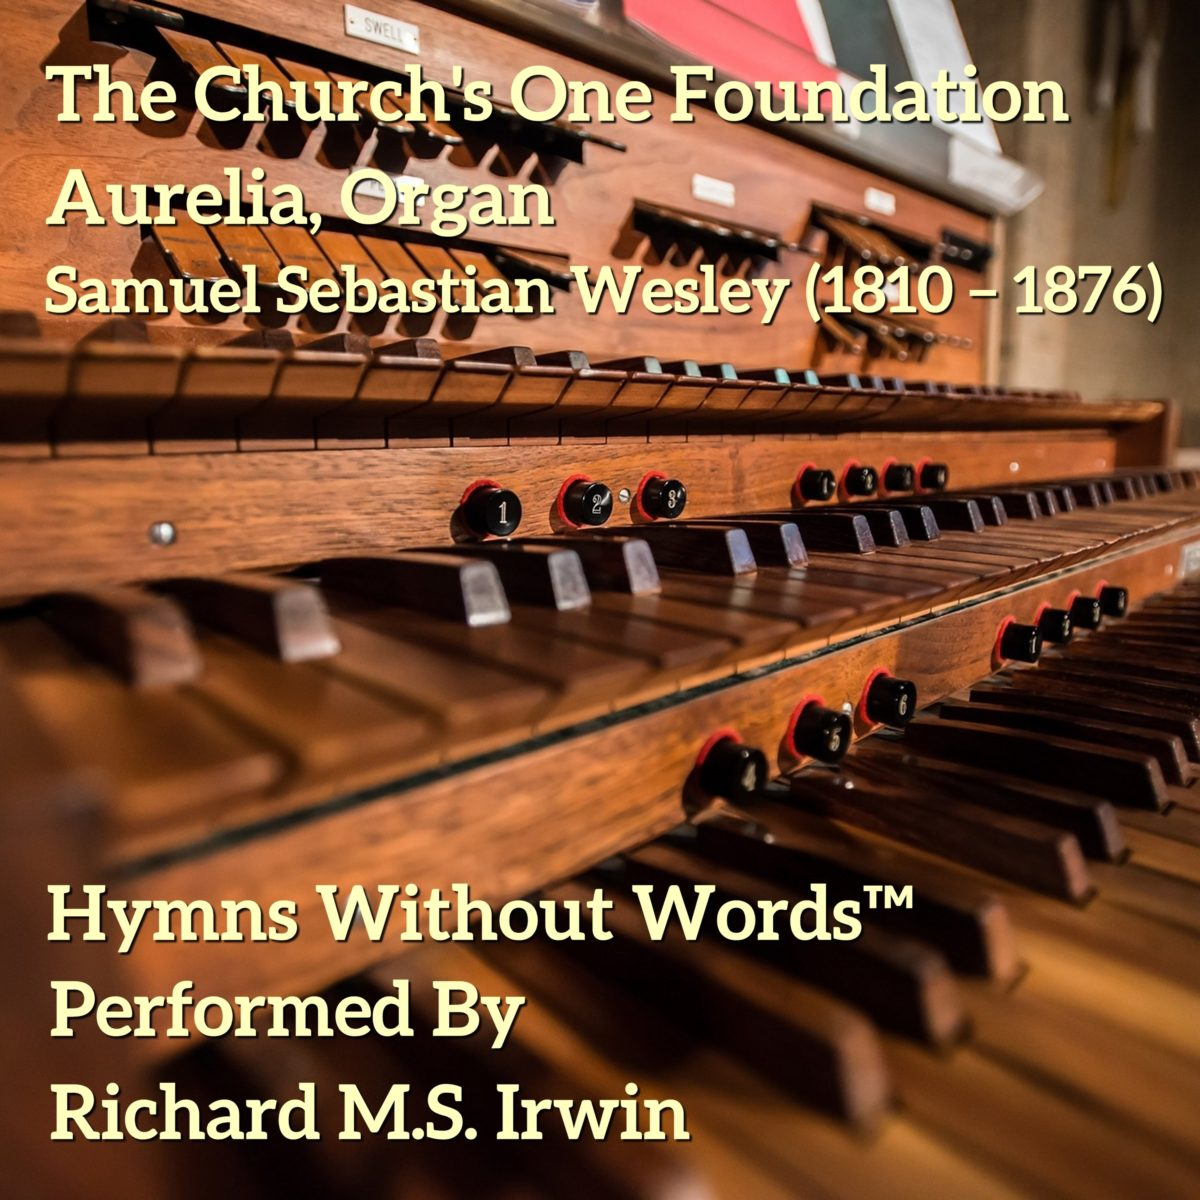 The Church's One Foundation (Aurelia, Organ, 4 Verses)